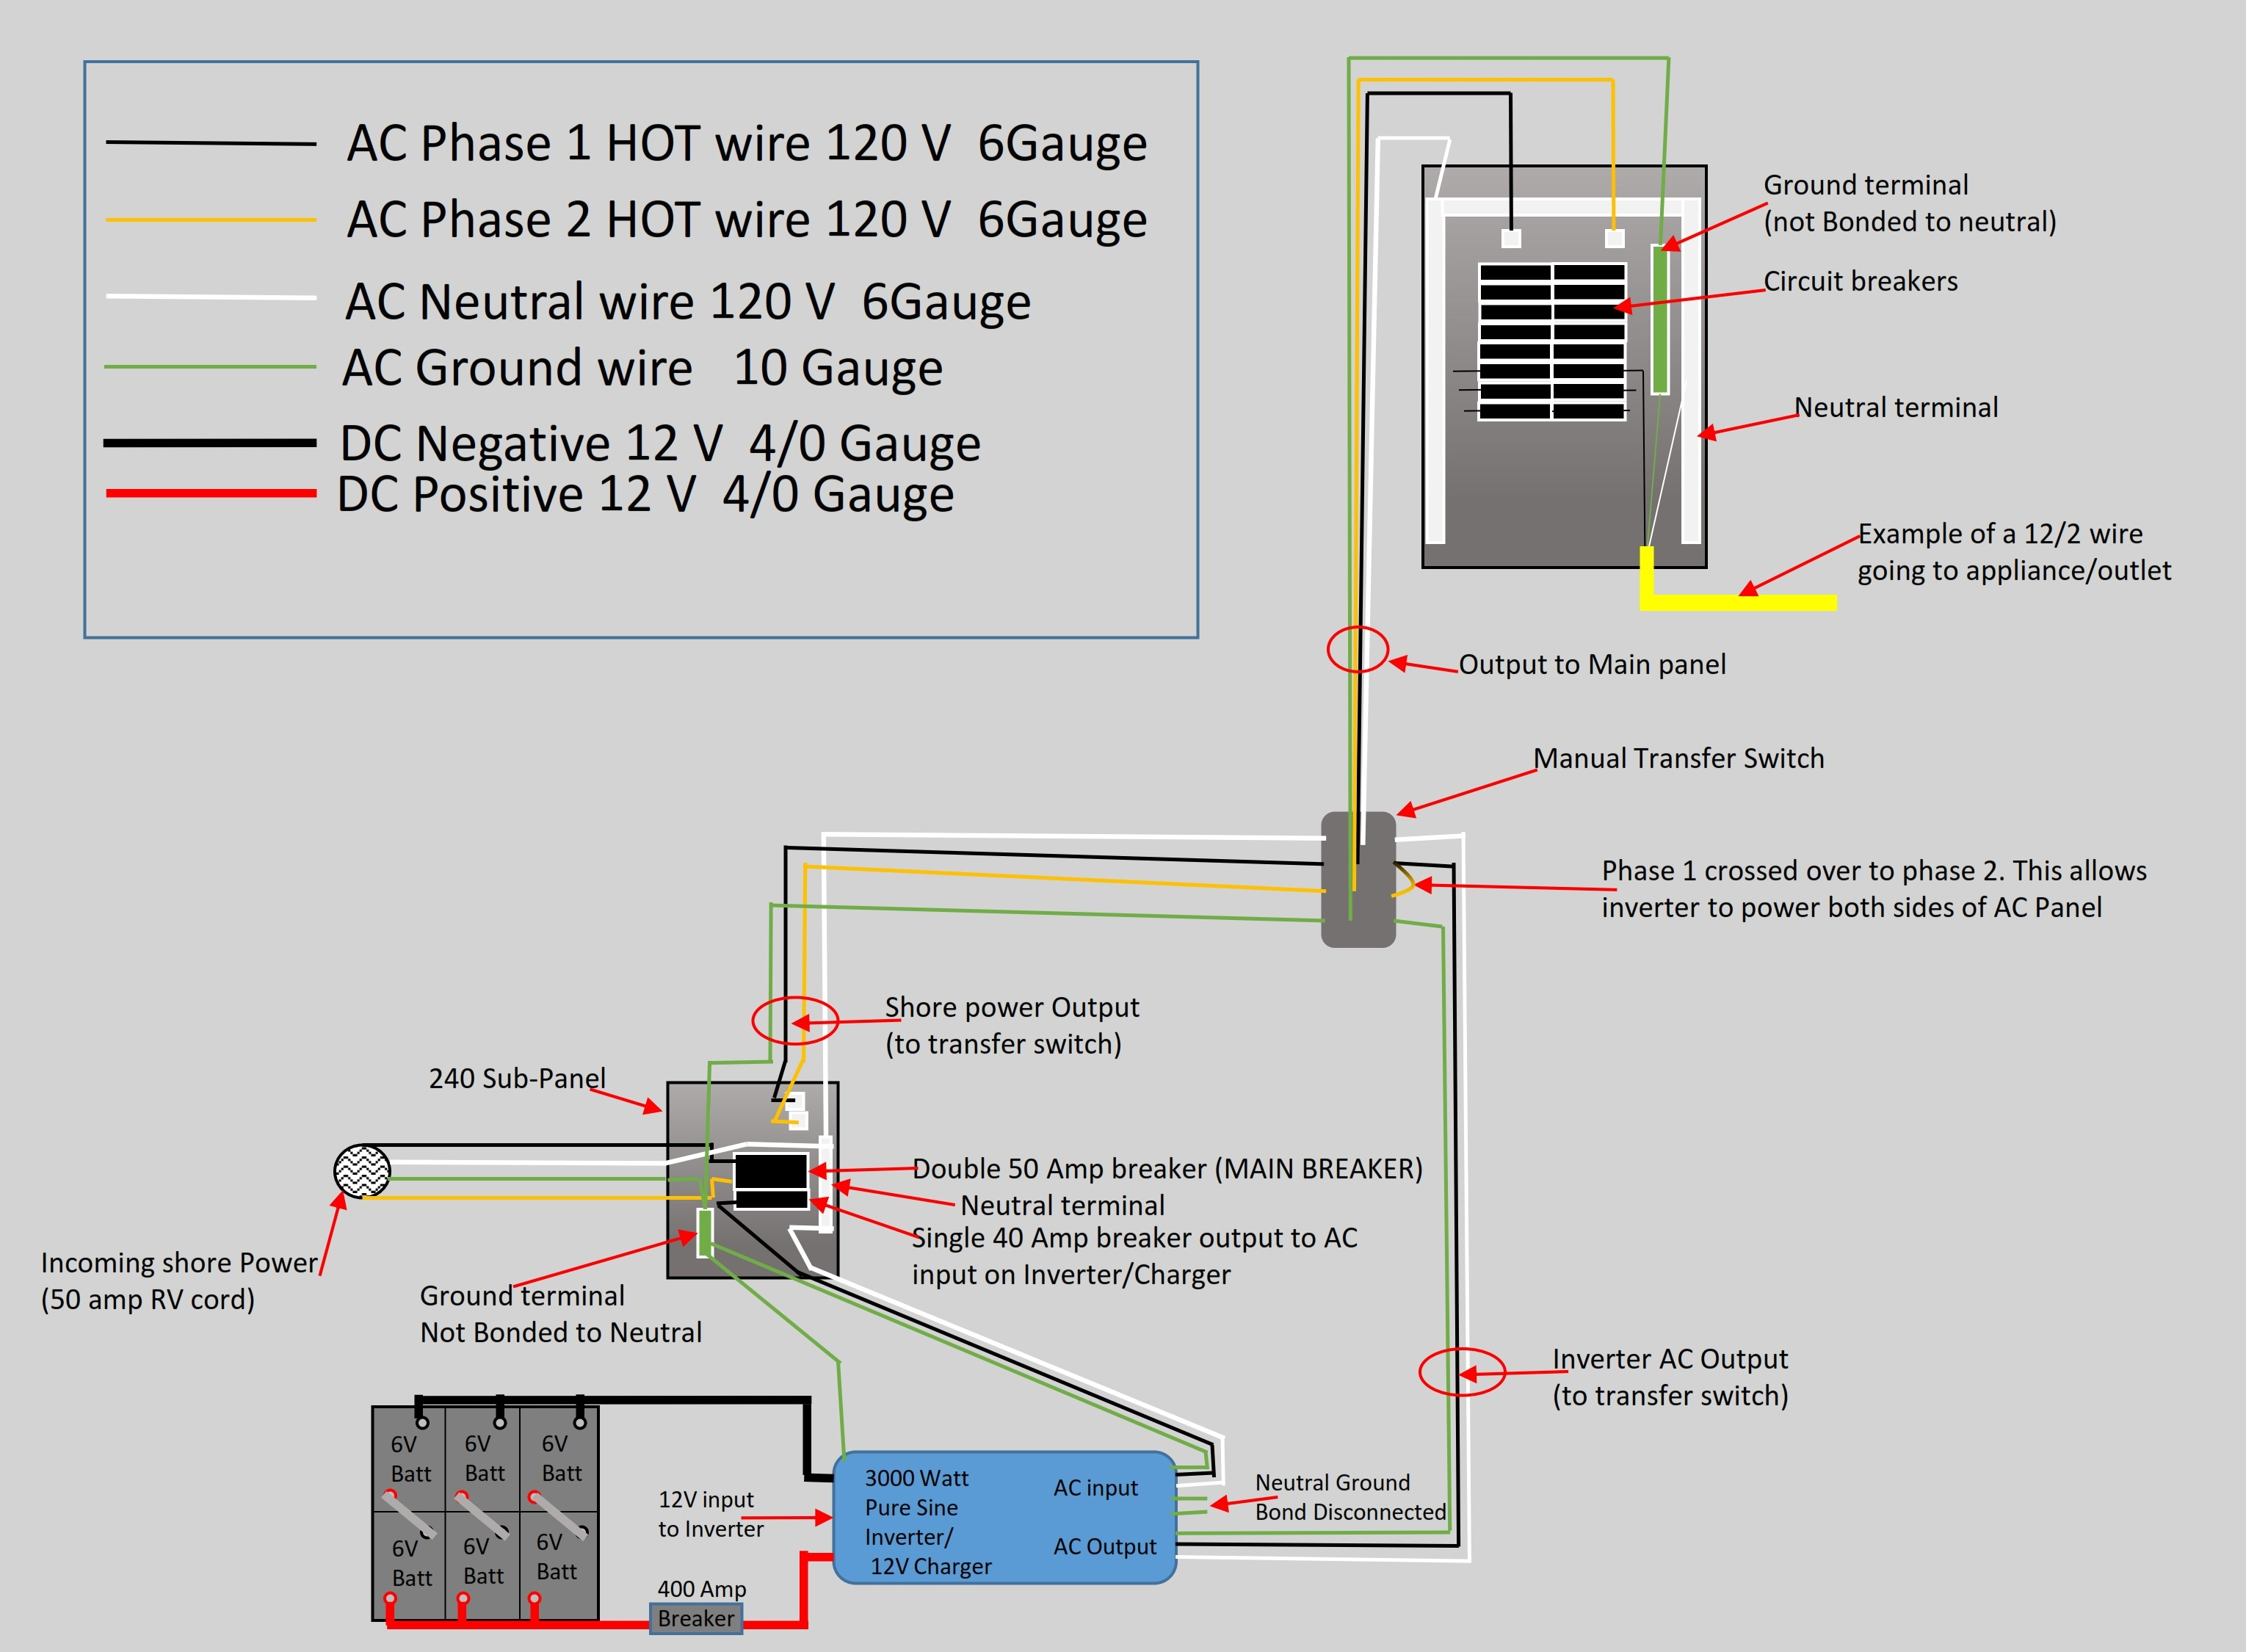 small resolution of 240 single phase wiring diagram for panelboard wiring library rh 58 codingcommunity de 120 208 volt wiring diagram 240v single phase wiring diagram